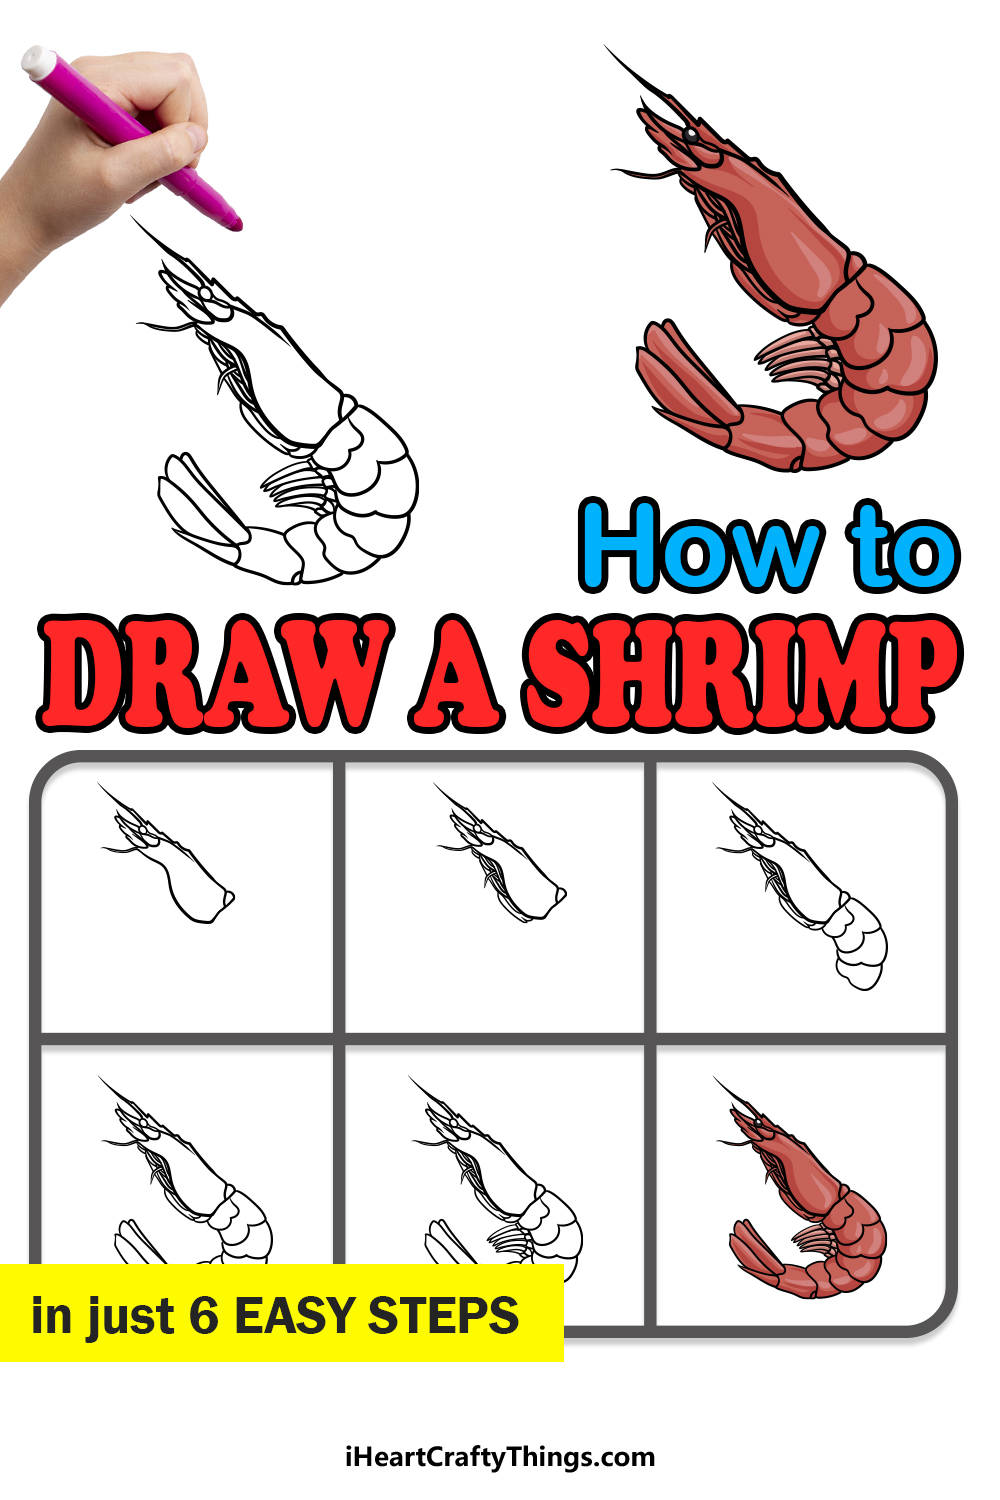 how to draw a shrimp in 6 easy steps